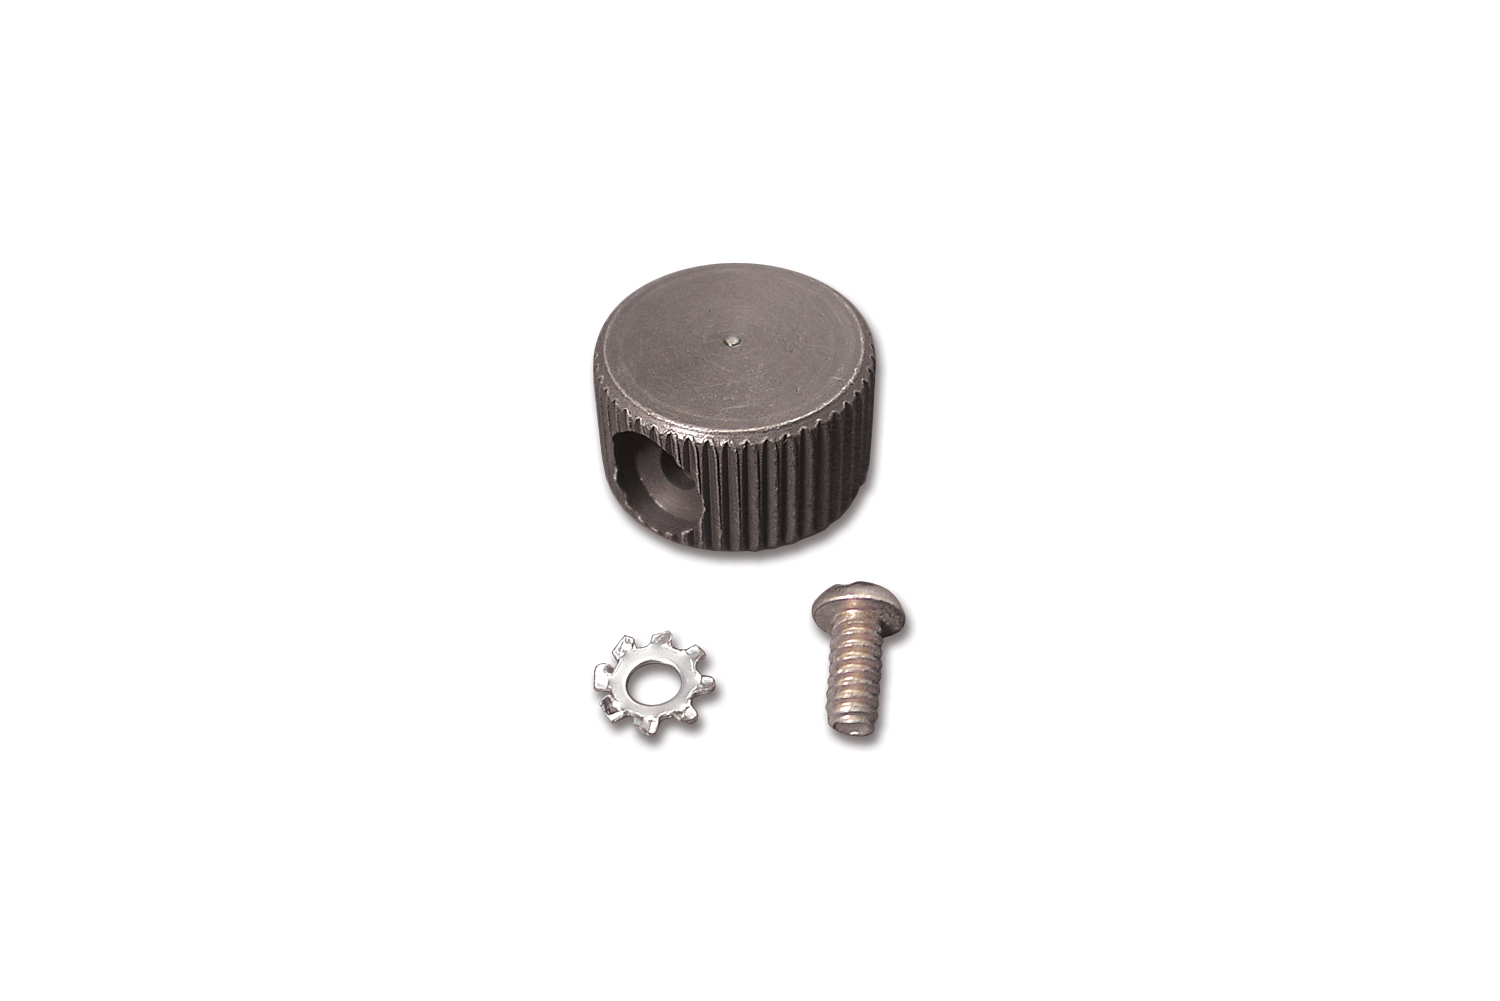 Parkerized Panel Switch Knob and Screw Kit